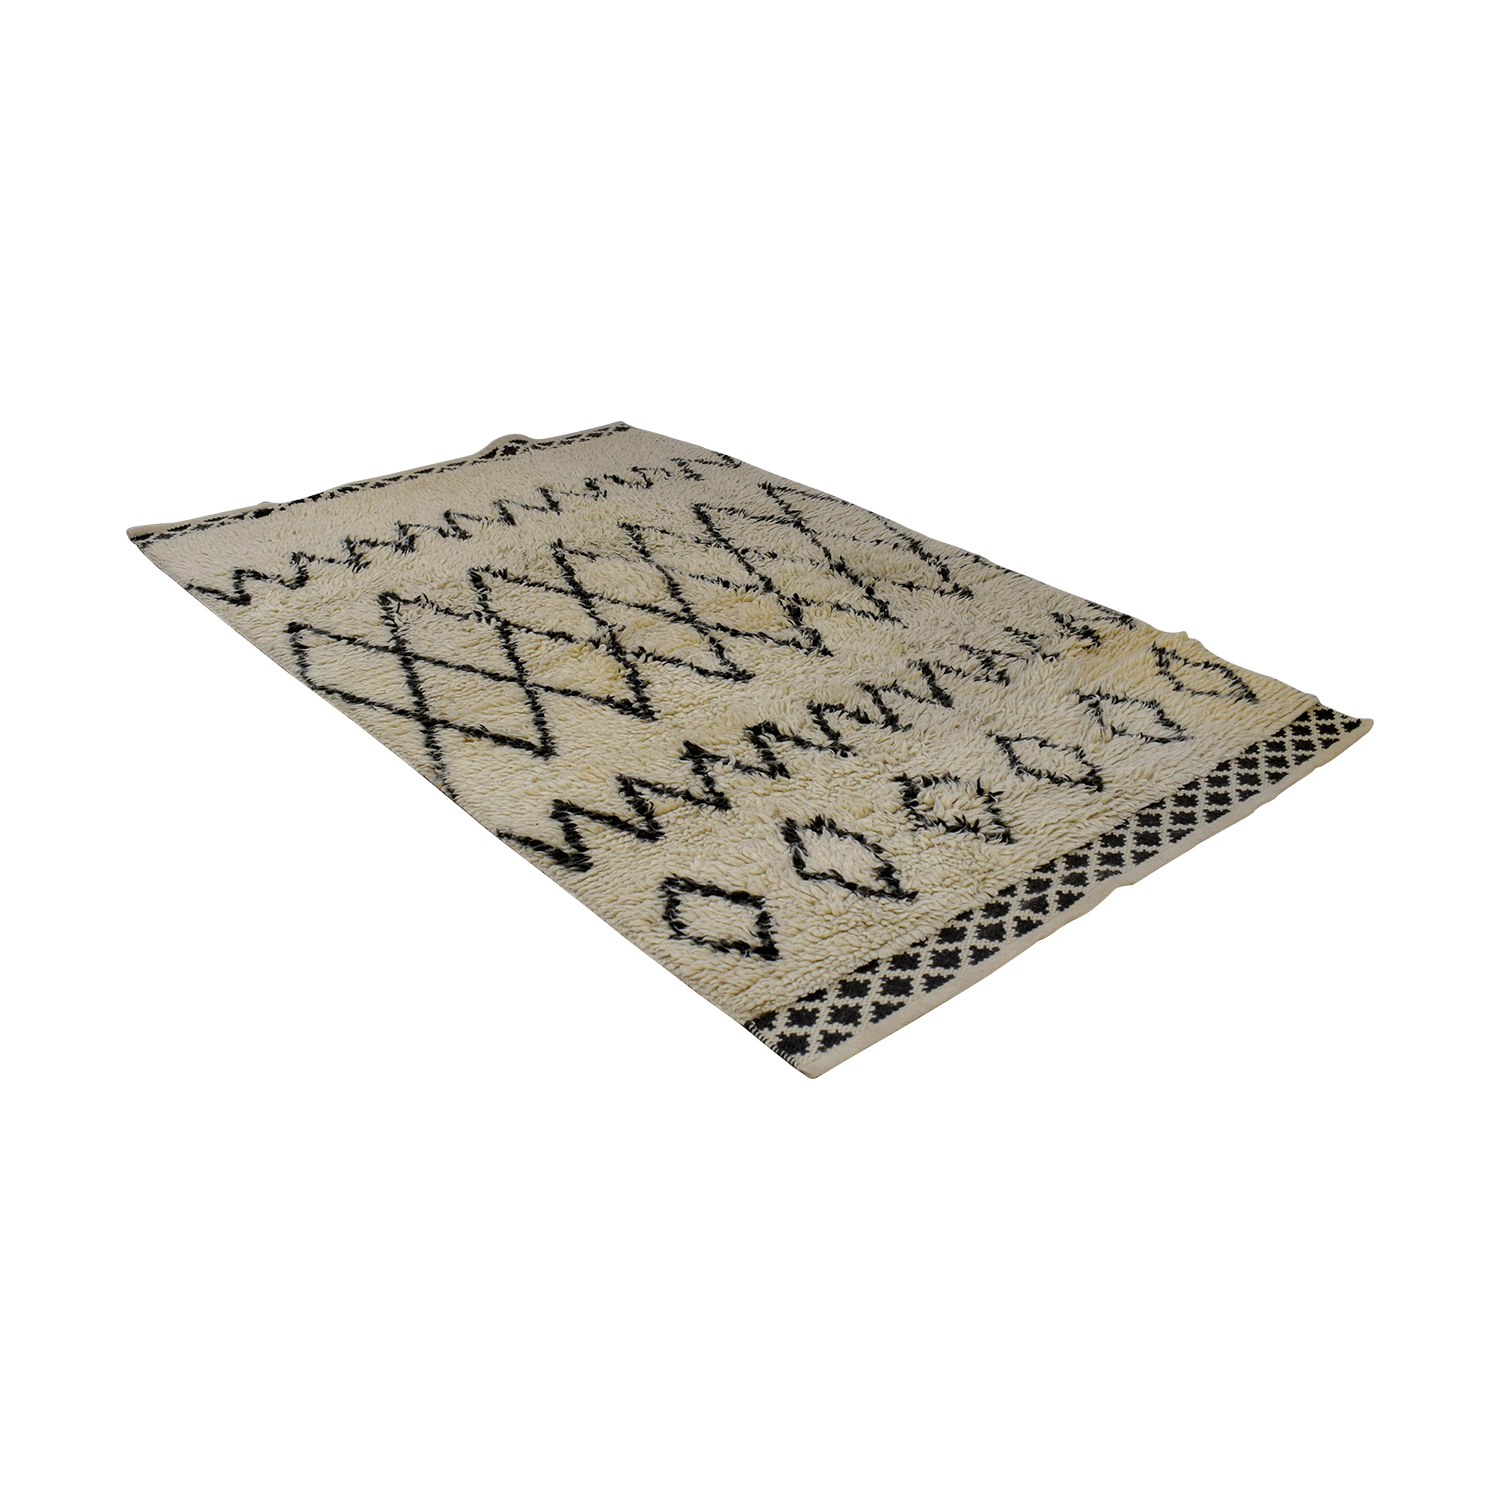 West Elm West Elm Beige and Grey Wool Rug dimensions